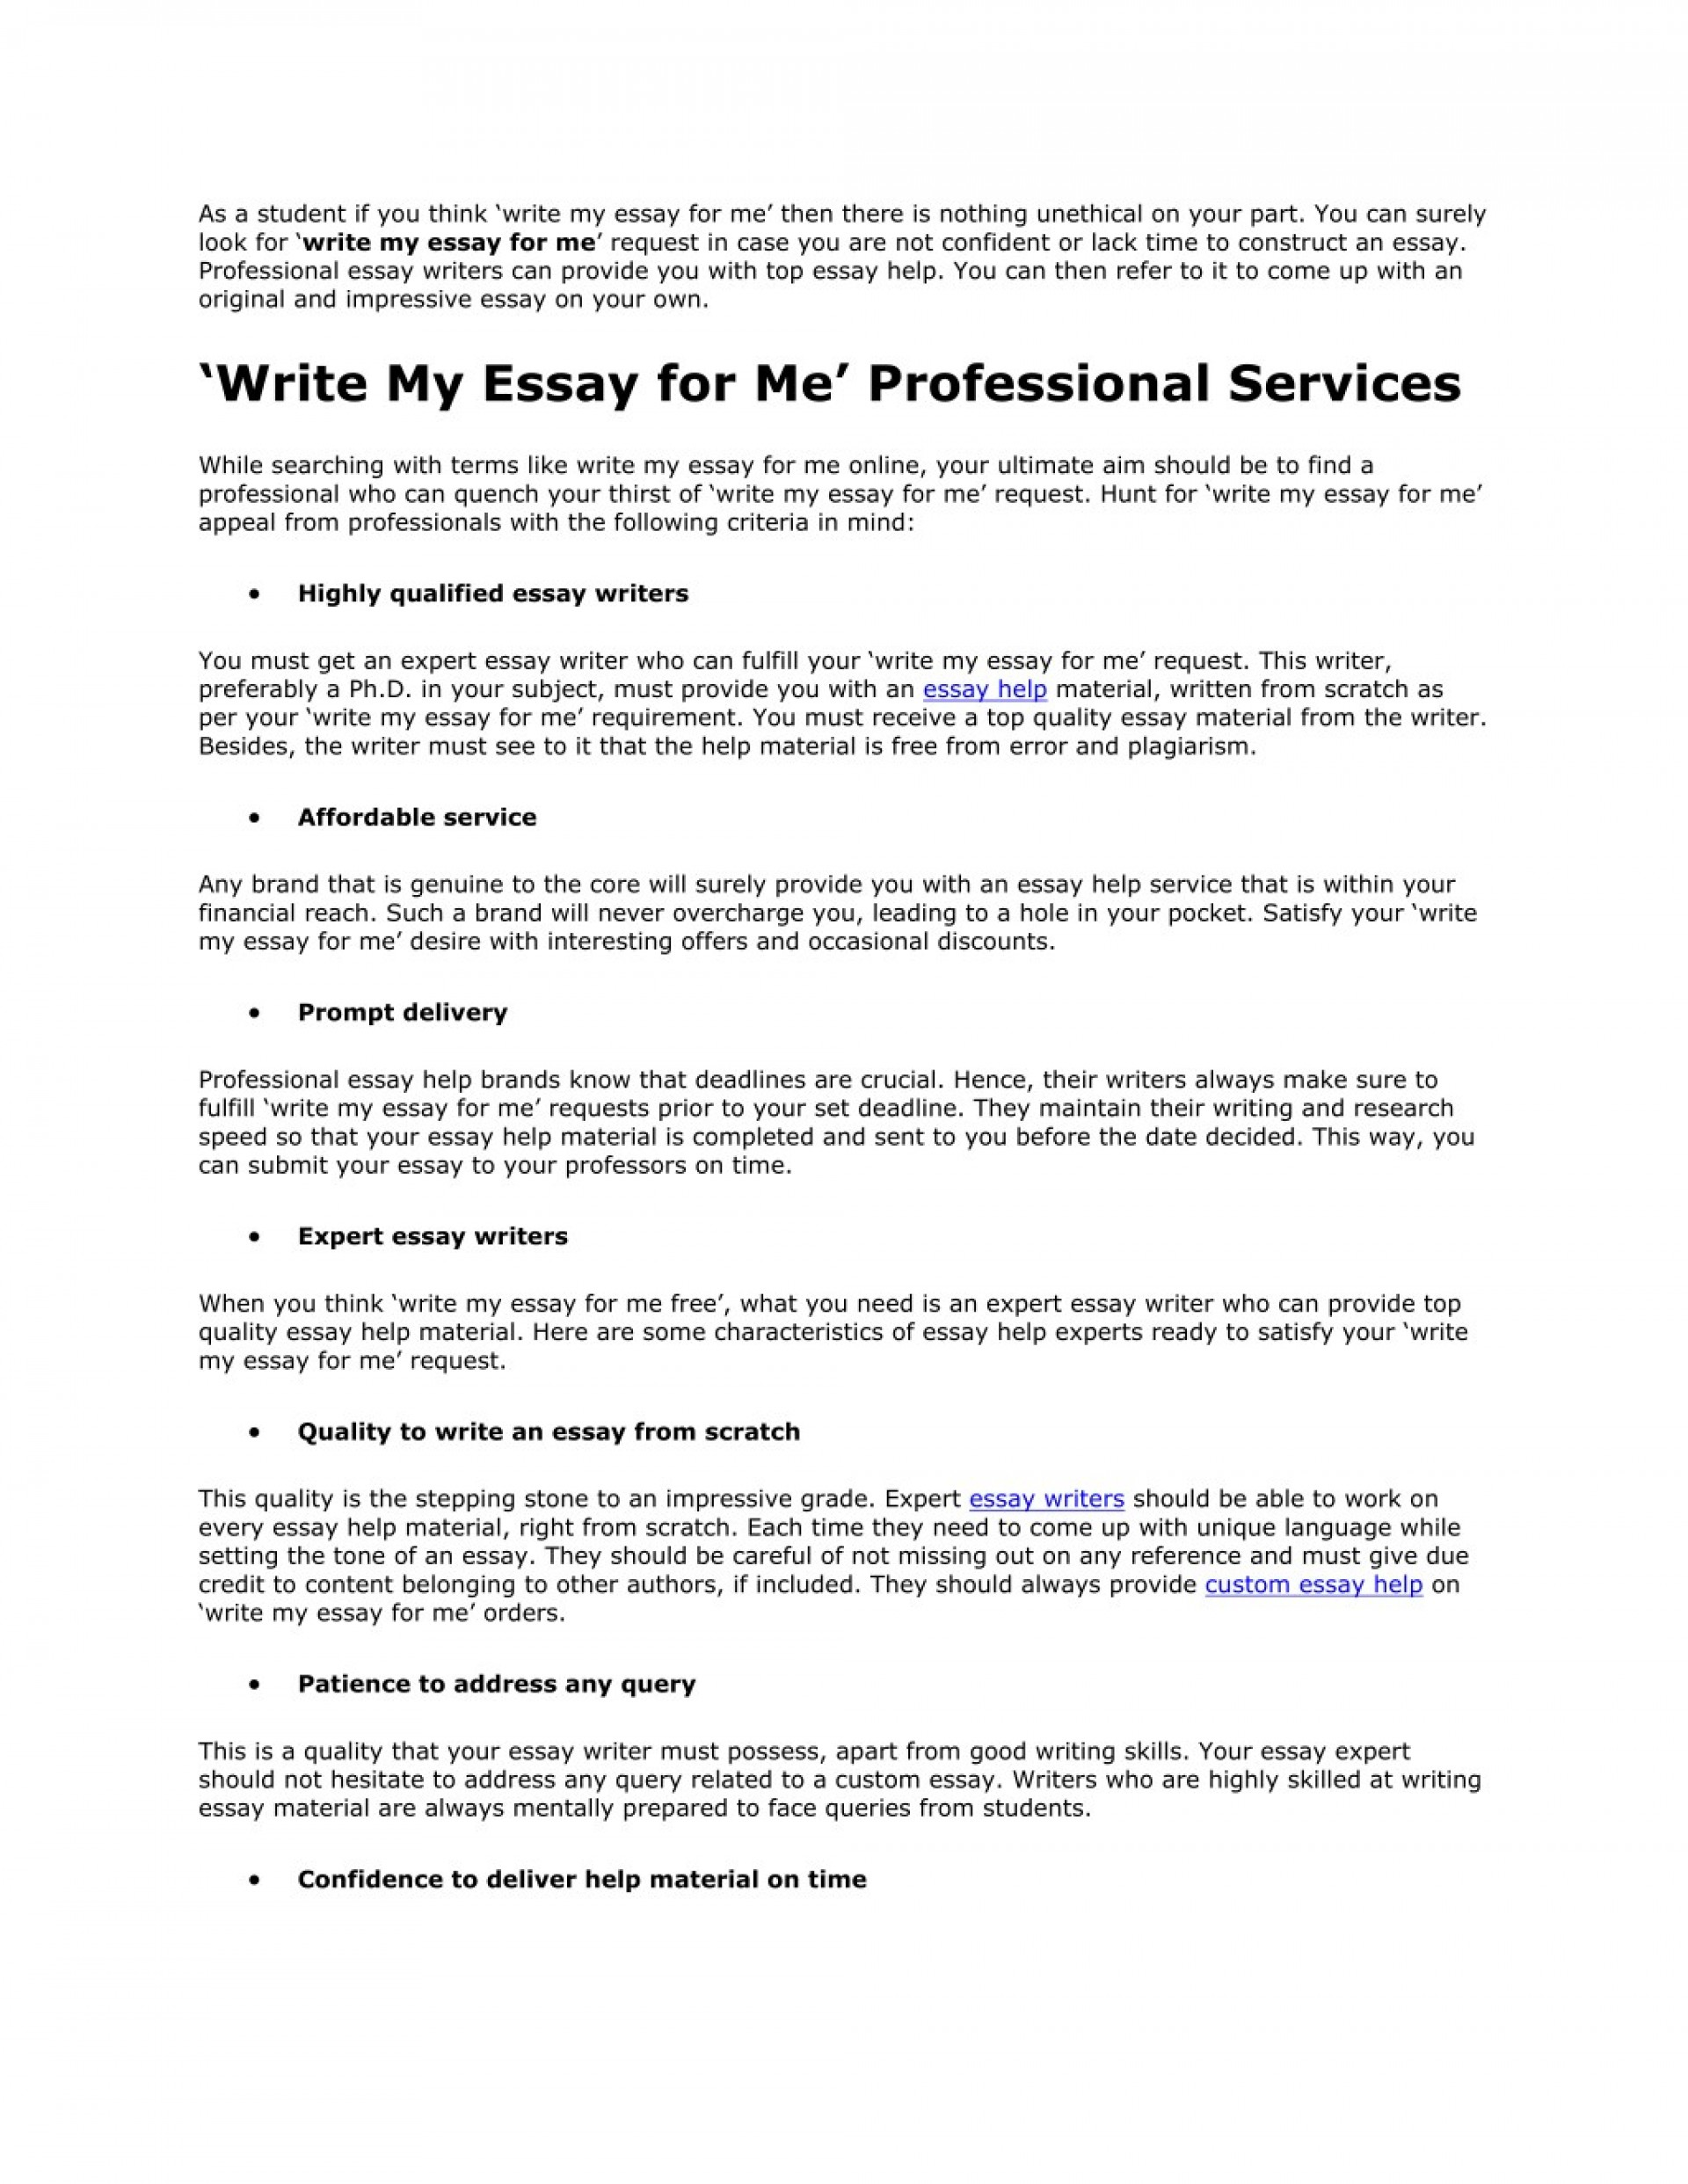 006 Essay Example Write For Me As Student If You Think My Amazing Custom Cheap Free 1920